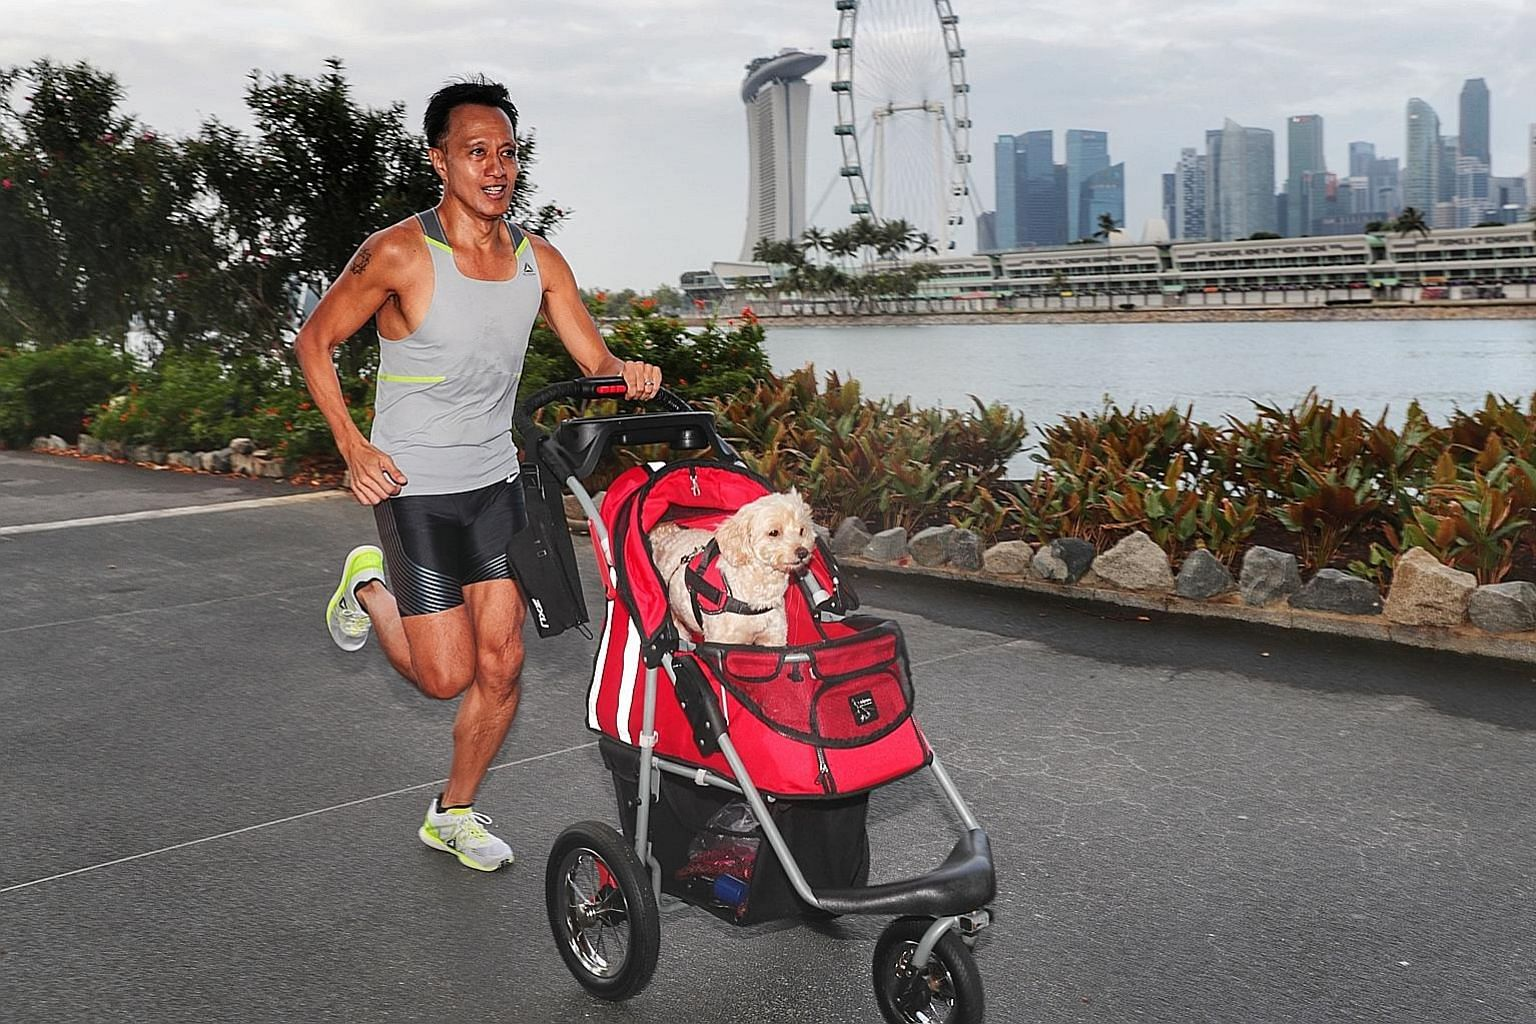 Head of sales Gil Madrid runs about 70km a week with his pet dog, Jack, in its pram.